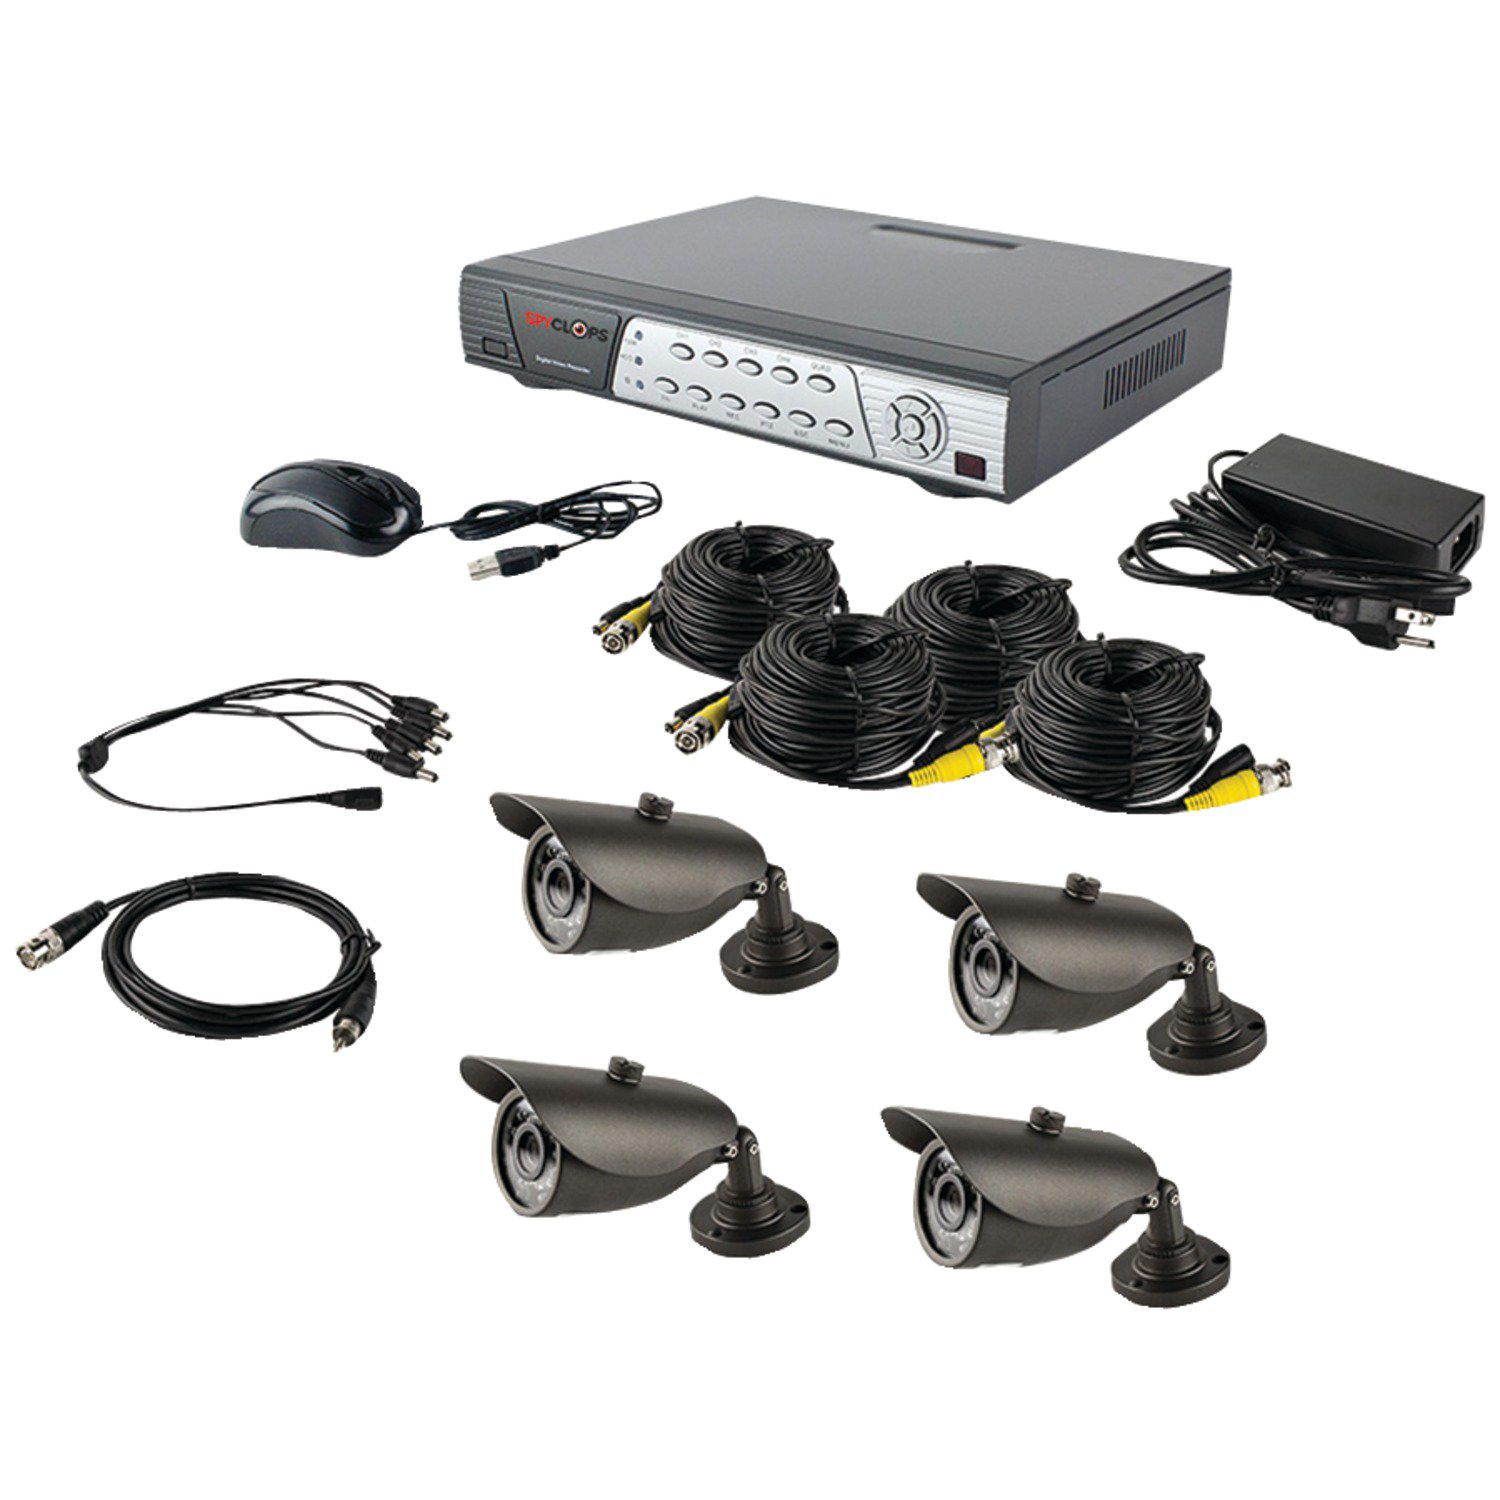 Ethereal SPY-DVRKIT2 DVR Kit with 4 Bullet Cameras